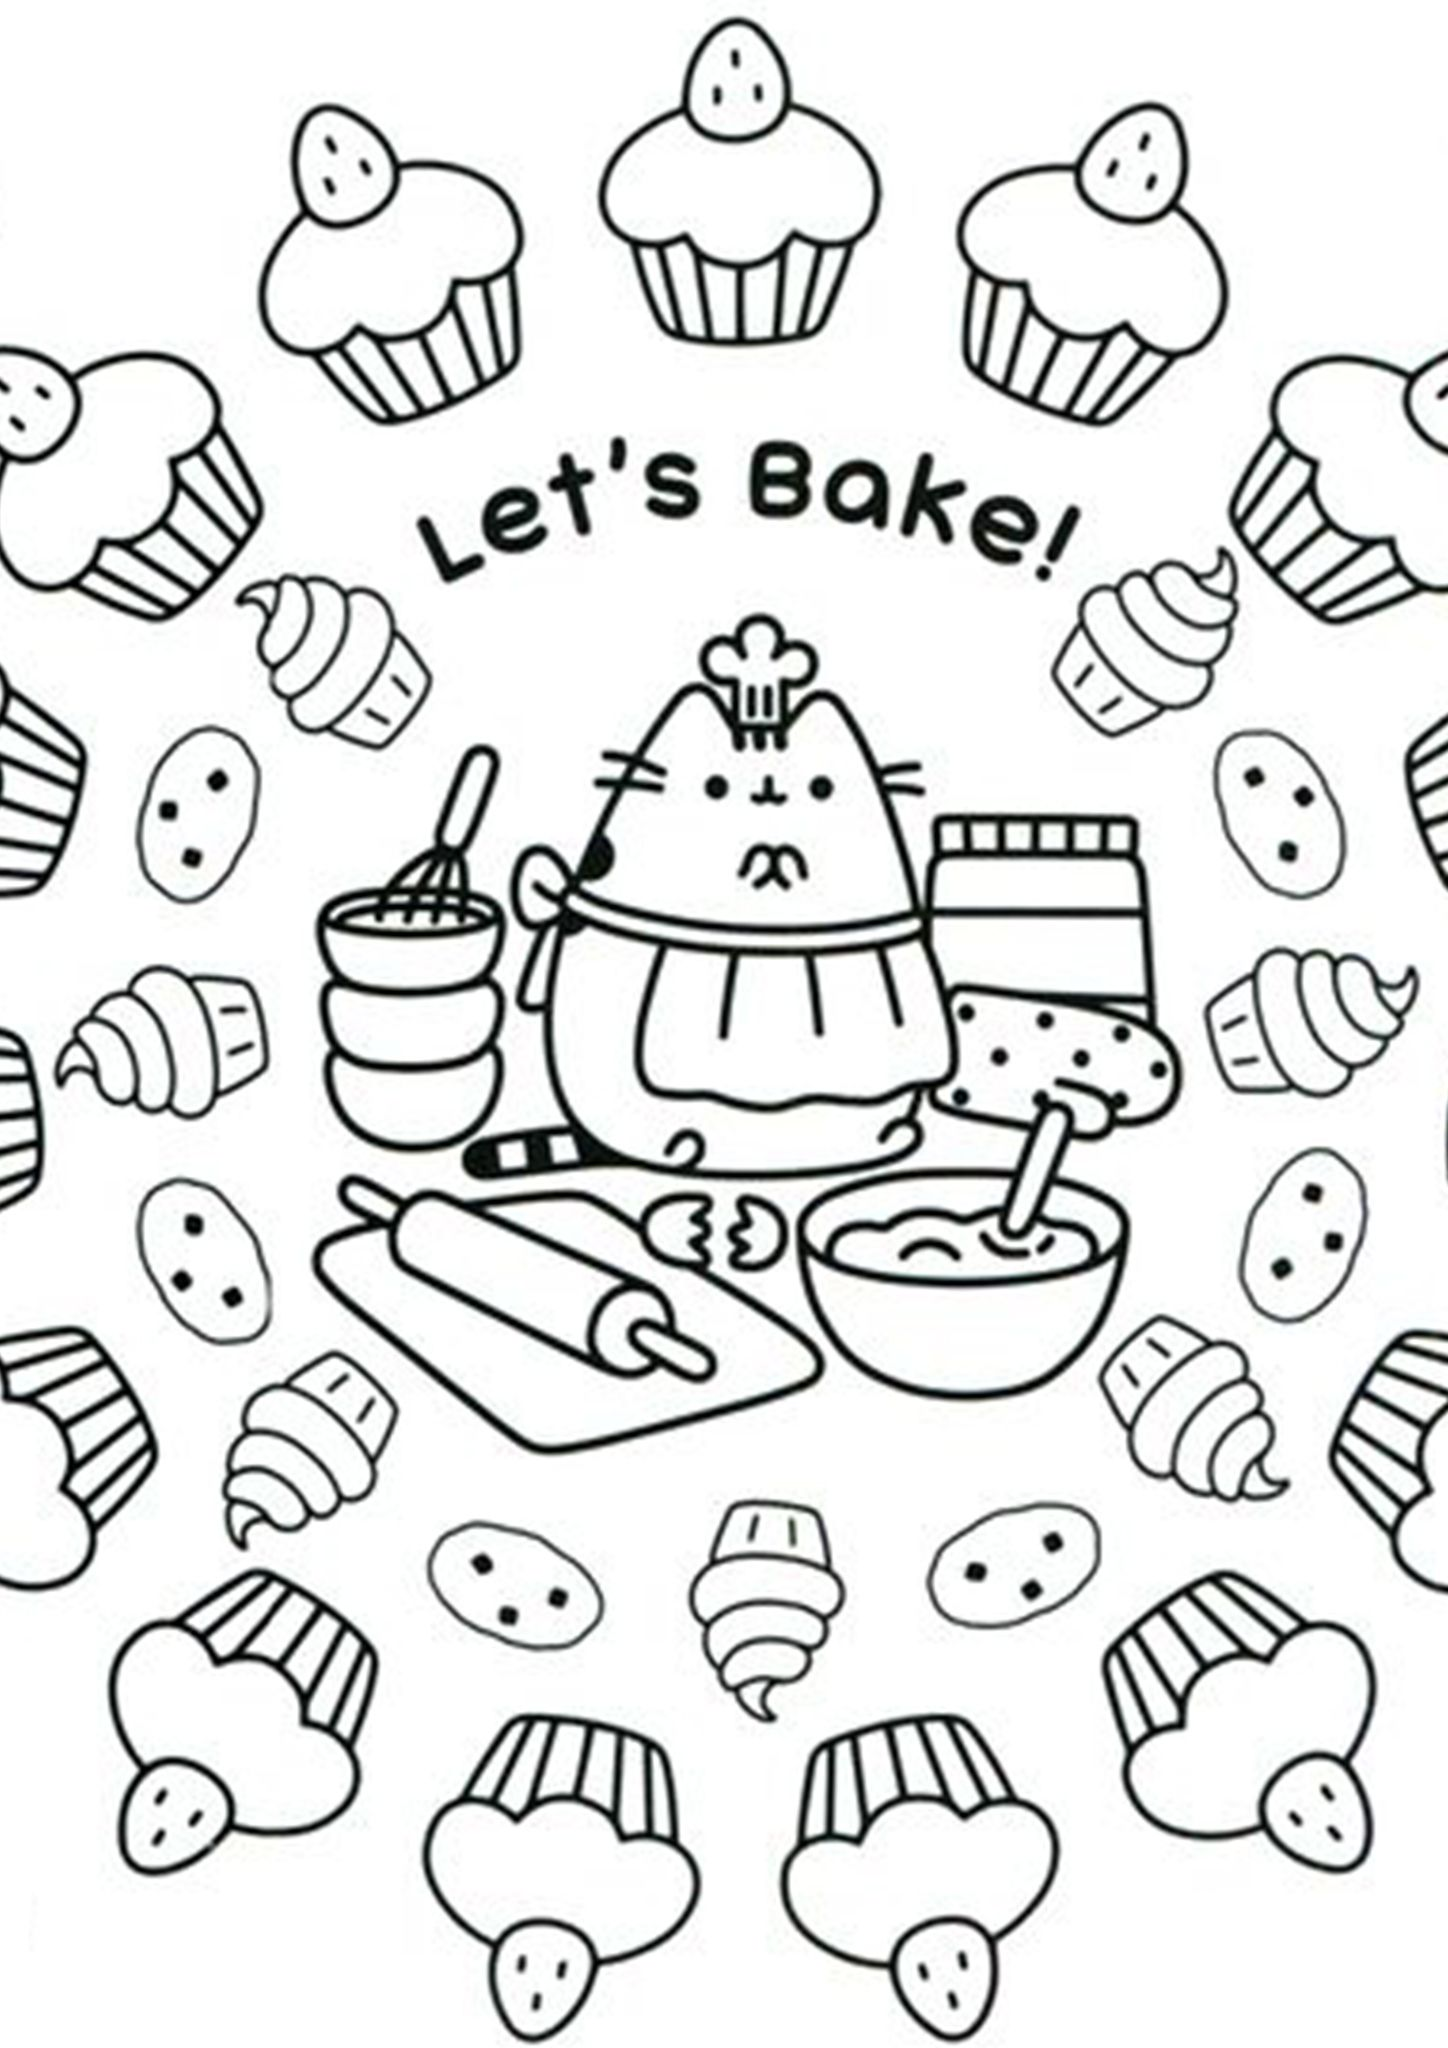 Free Easy To Print Pusheen Coloring Pages Pusheen Coloring Pages Elsa Coloring Pages Cartoon Coloring Pages